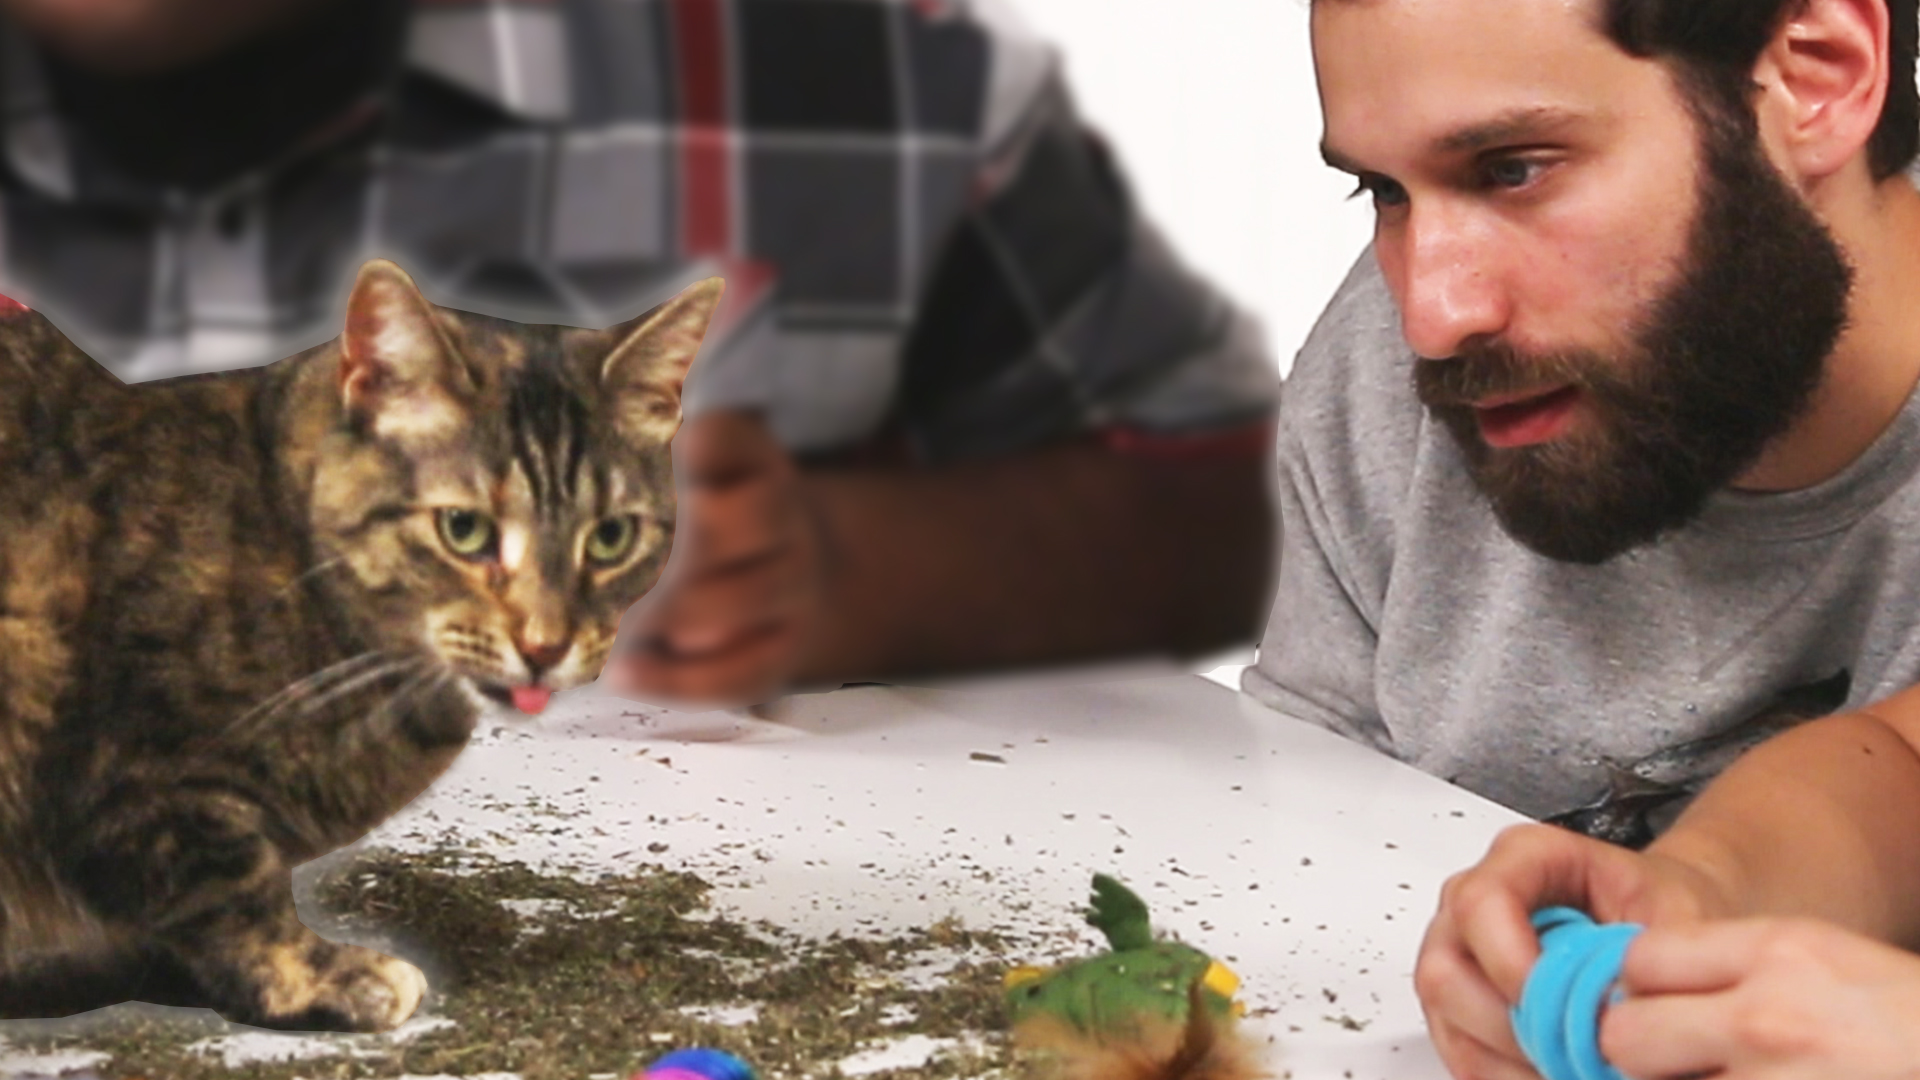 Buzzfeed Video Stoned People Play With Cats On Catnip